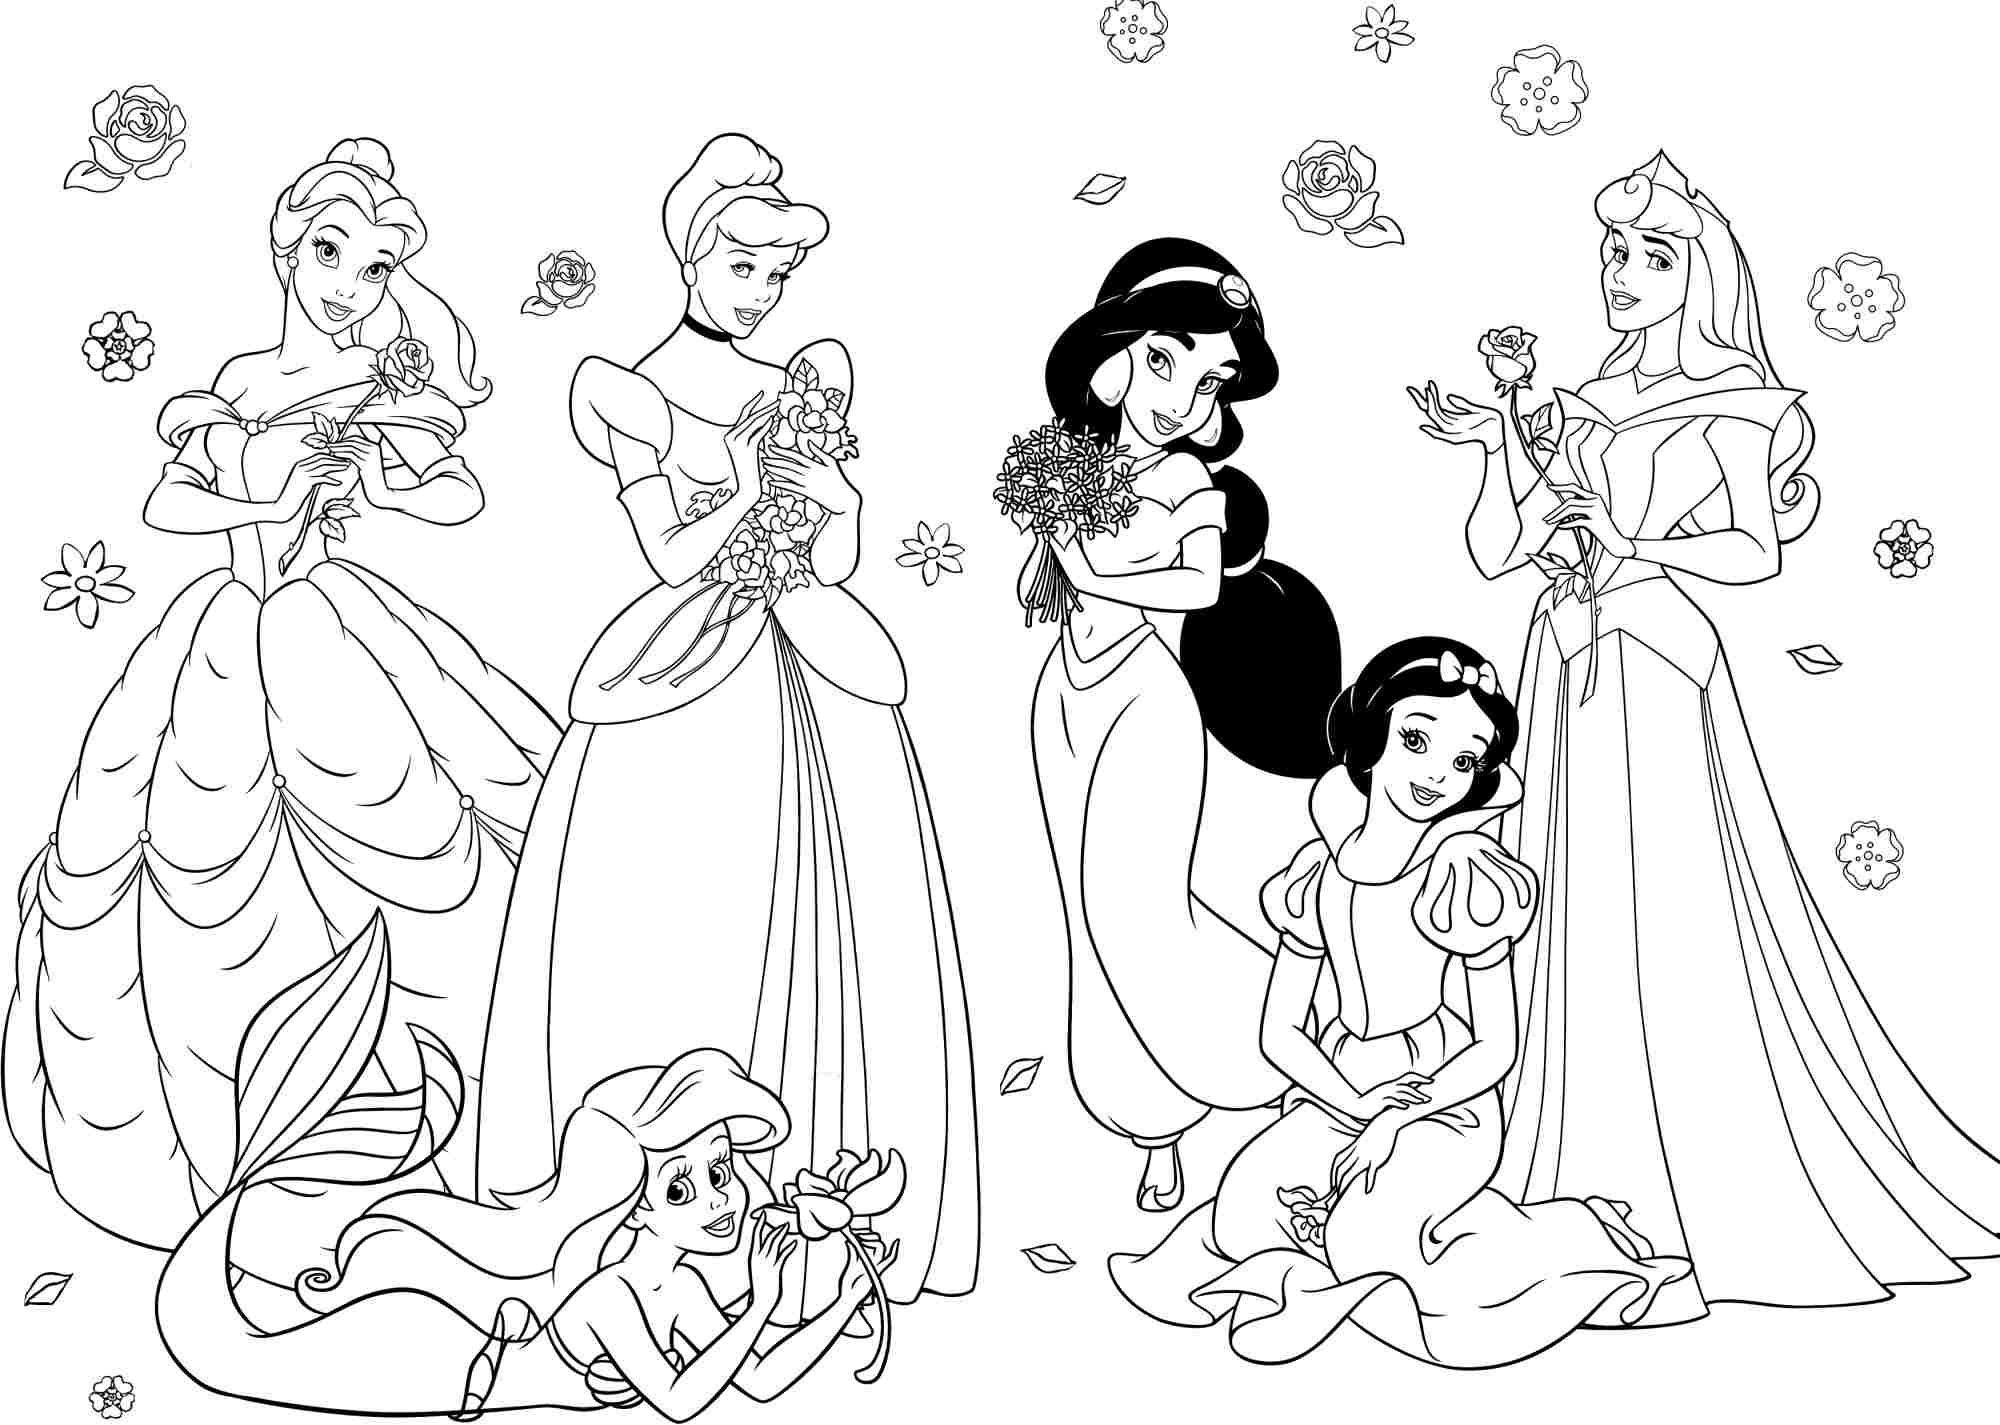 456 best disney coloring images on pinterest coloring sheets